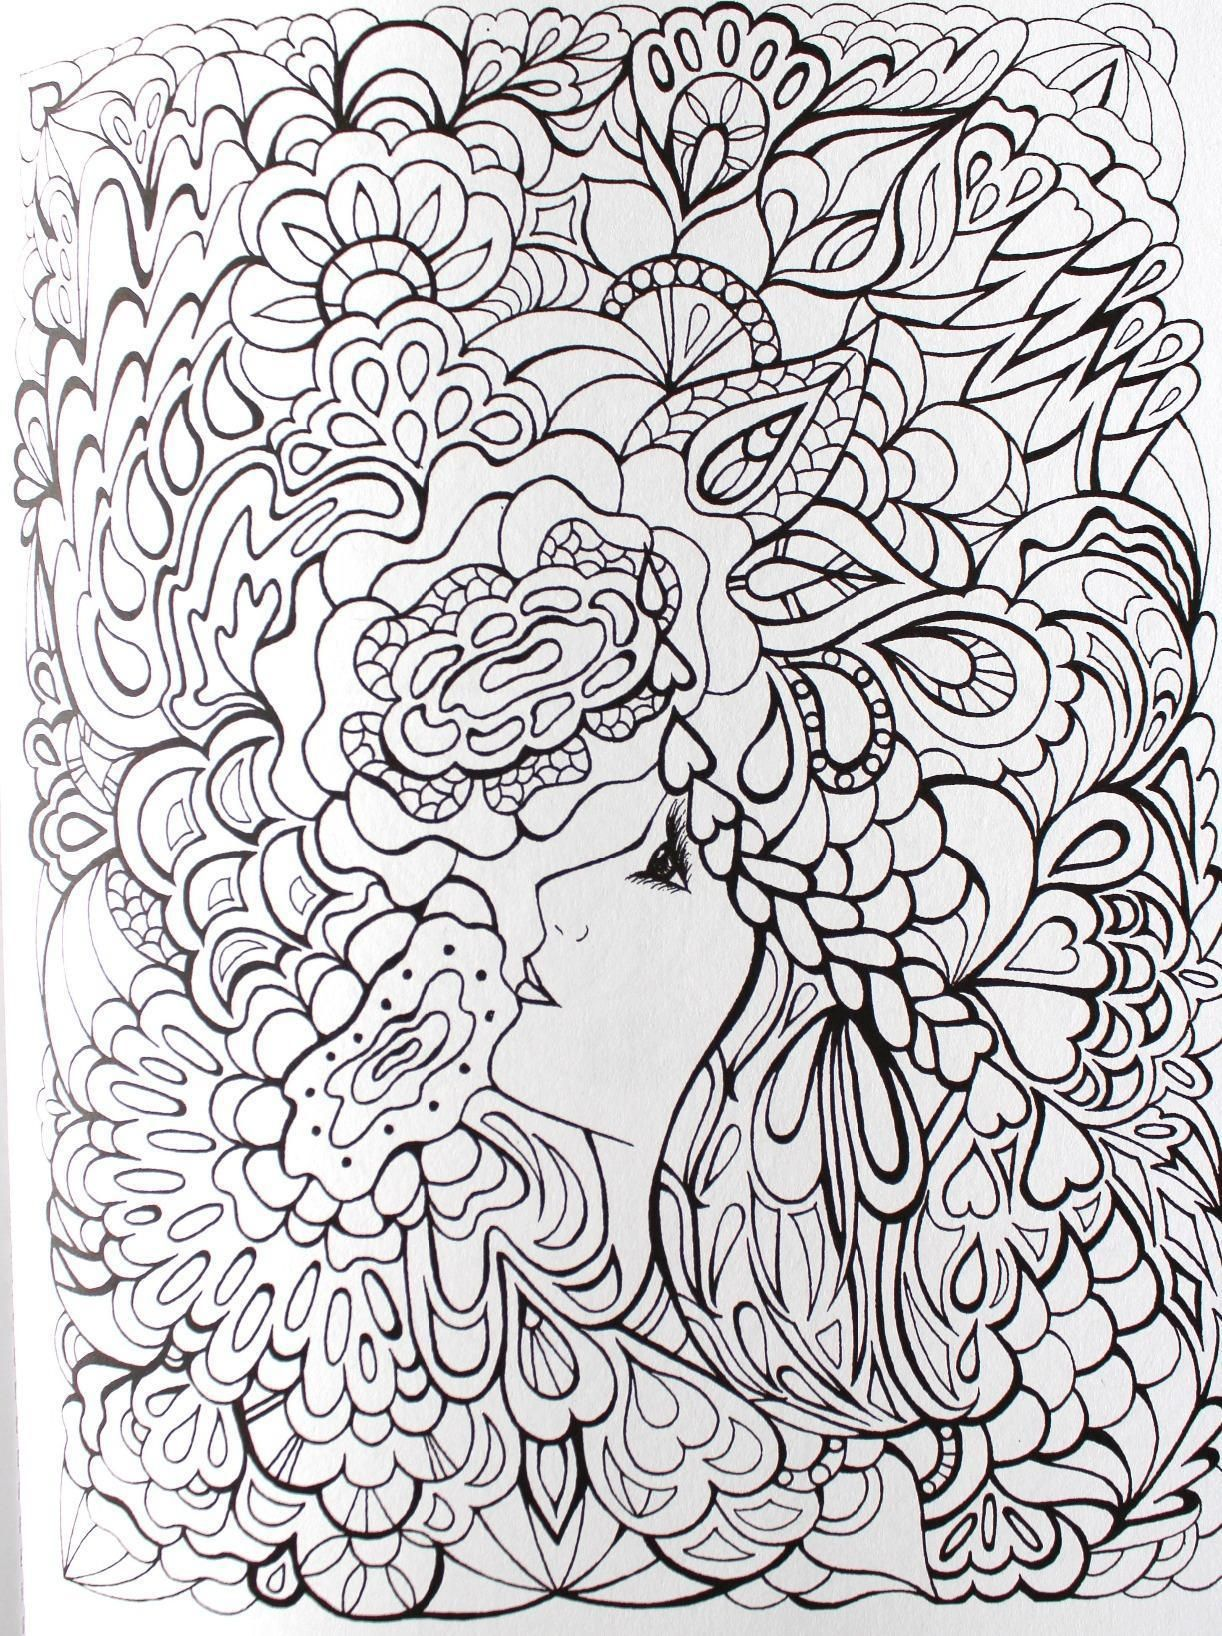 Creative Haven Fanciful Faces Coloring Book Creative Haven Coloring Books Miryam Adatto Creativ Creative Haven Coloring Books Coloring Books Coloring Pages